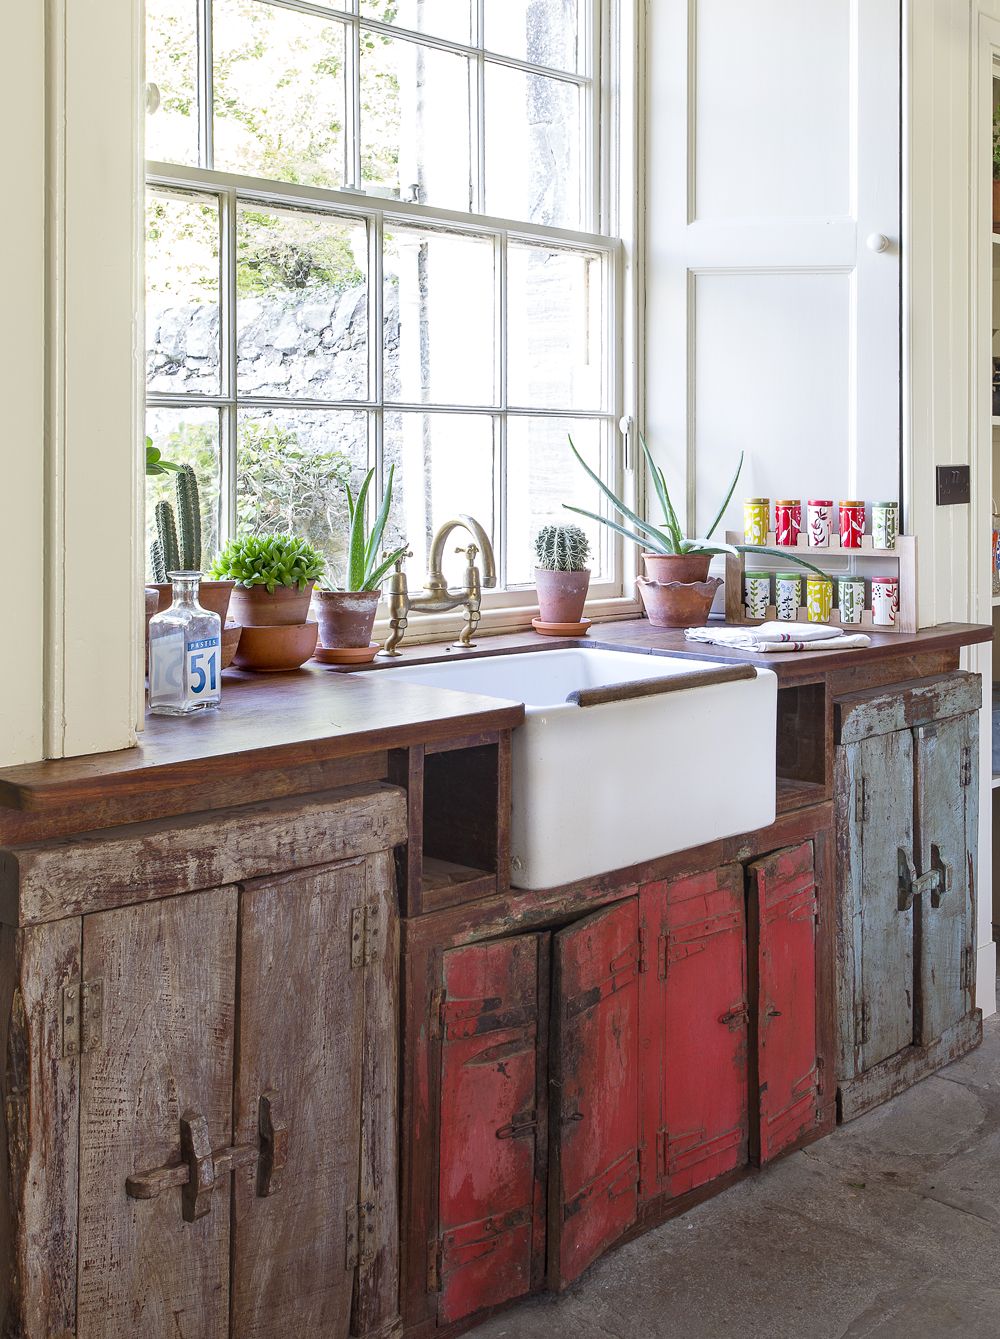 Using reclaimed wood in your interior design can greatly reduce your carbon footprint and is super kind to the environment.